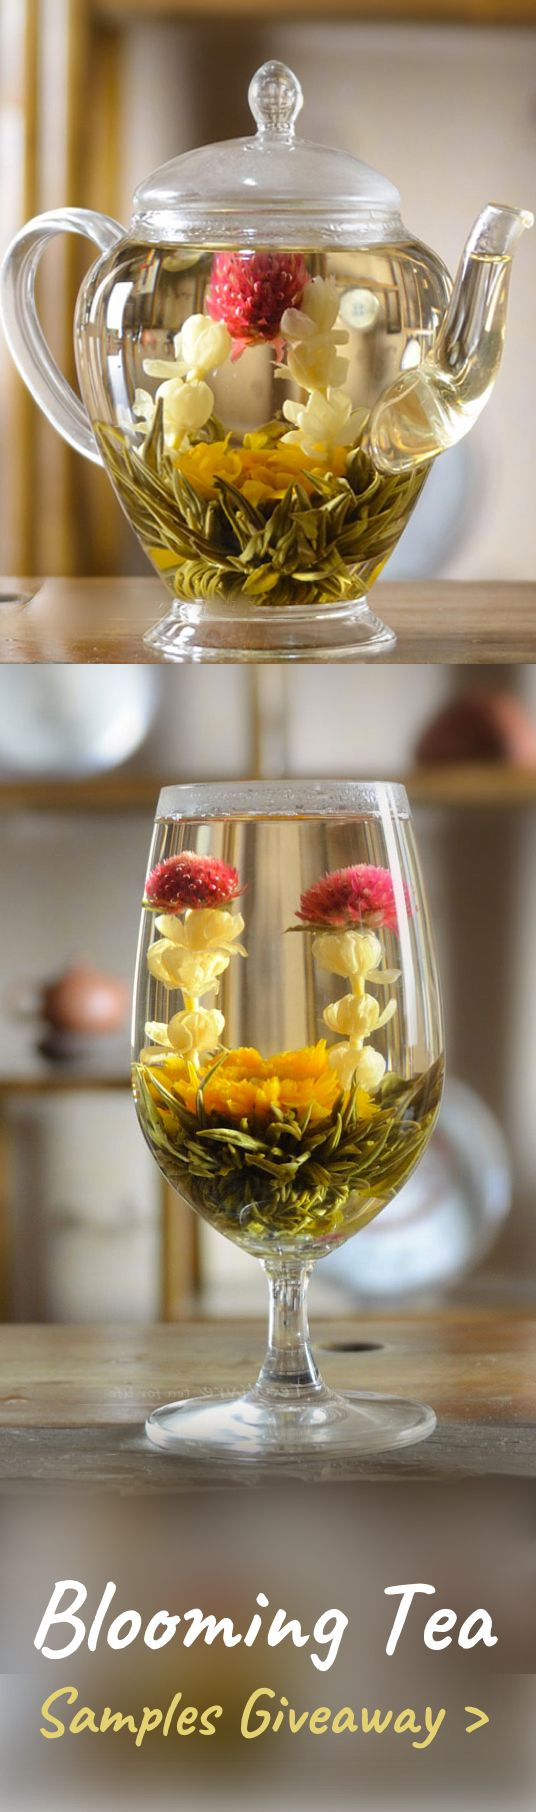 Dinner Party Gift Ideas Part - 49: We Are Giving Away FREE Samples Of Our Organic Blooming Tea. Itu0027s A Great  Christmas Gift Idea For Tea Lovers, Or For Hosting A Dinner Party.